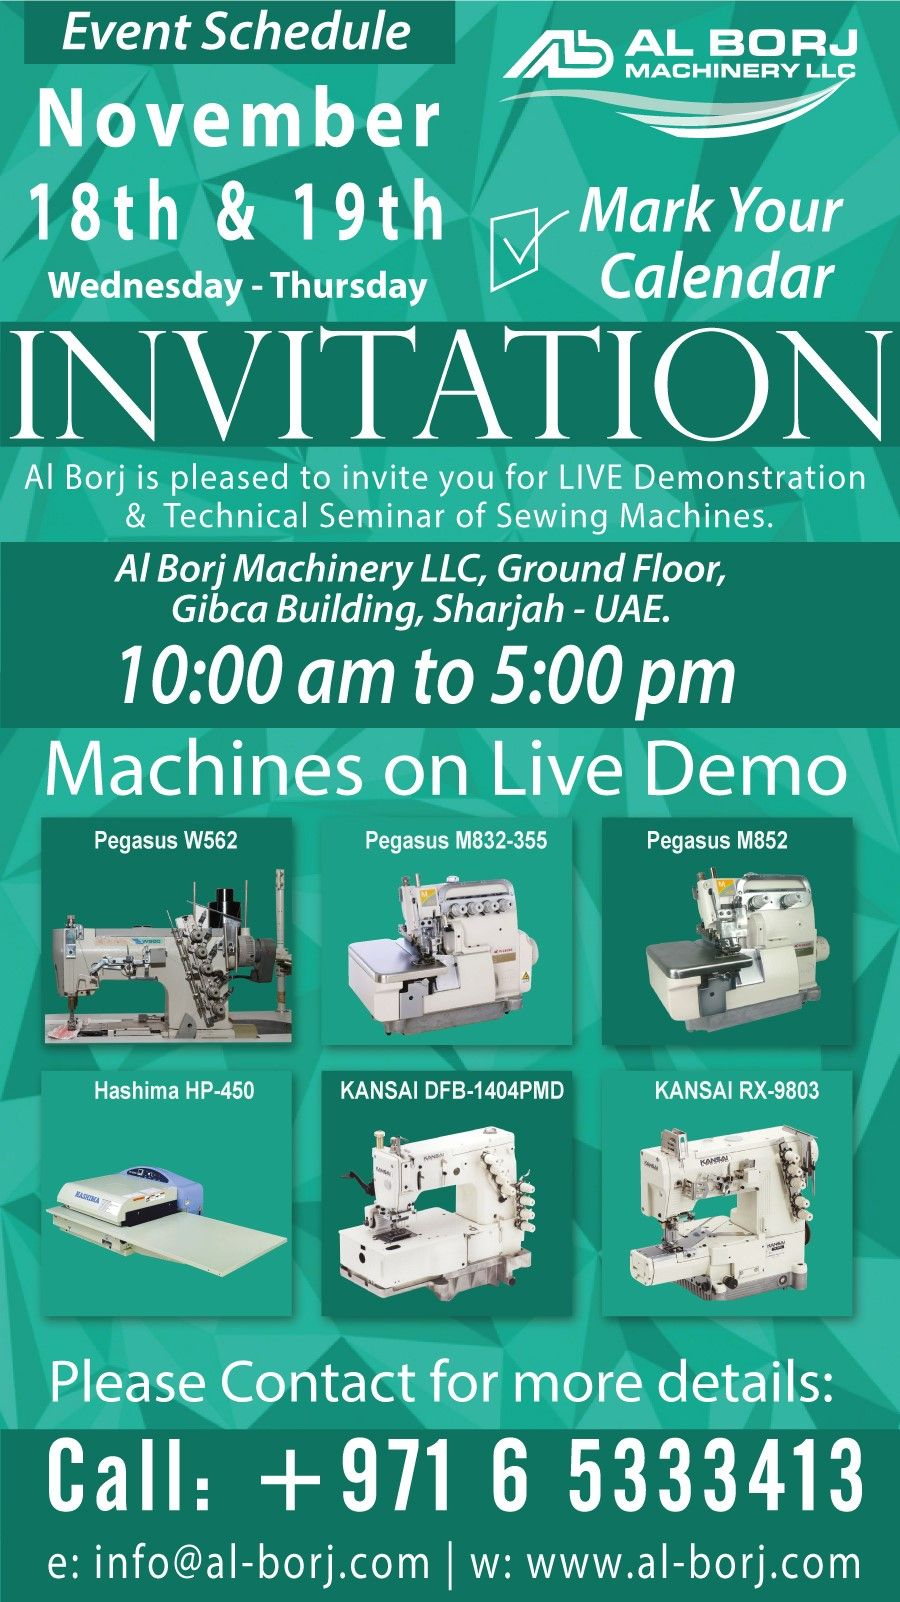 Invitation We Are Pleased To Invite You For Live Demonstration